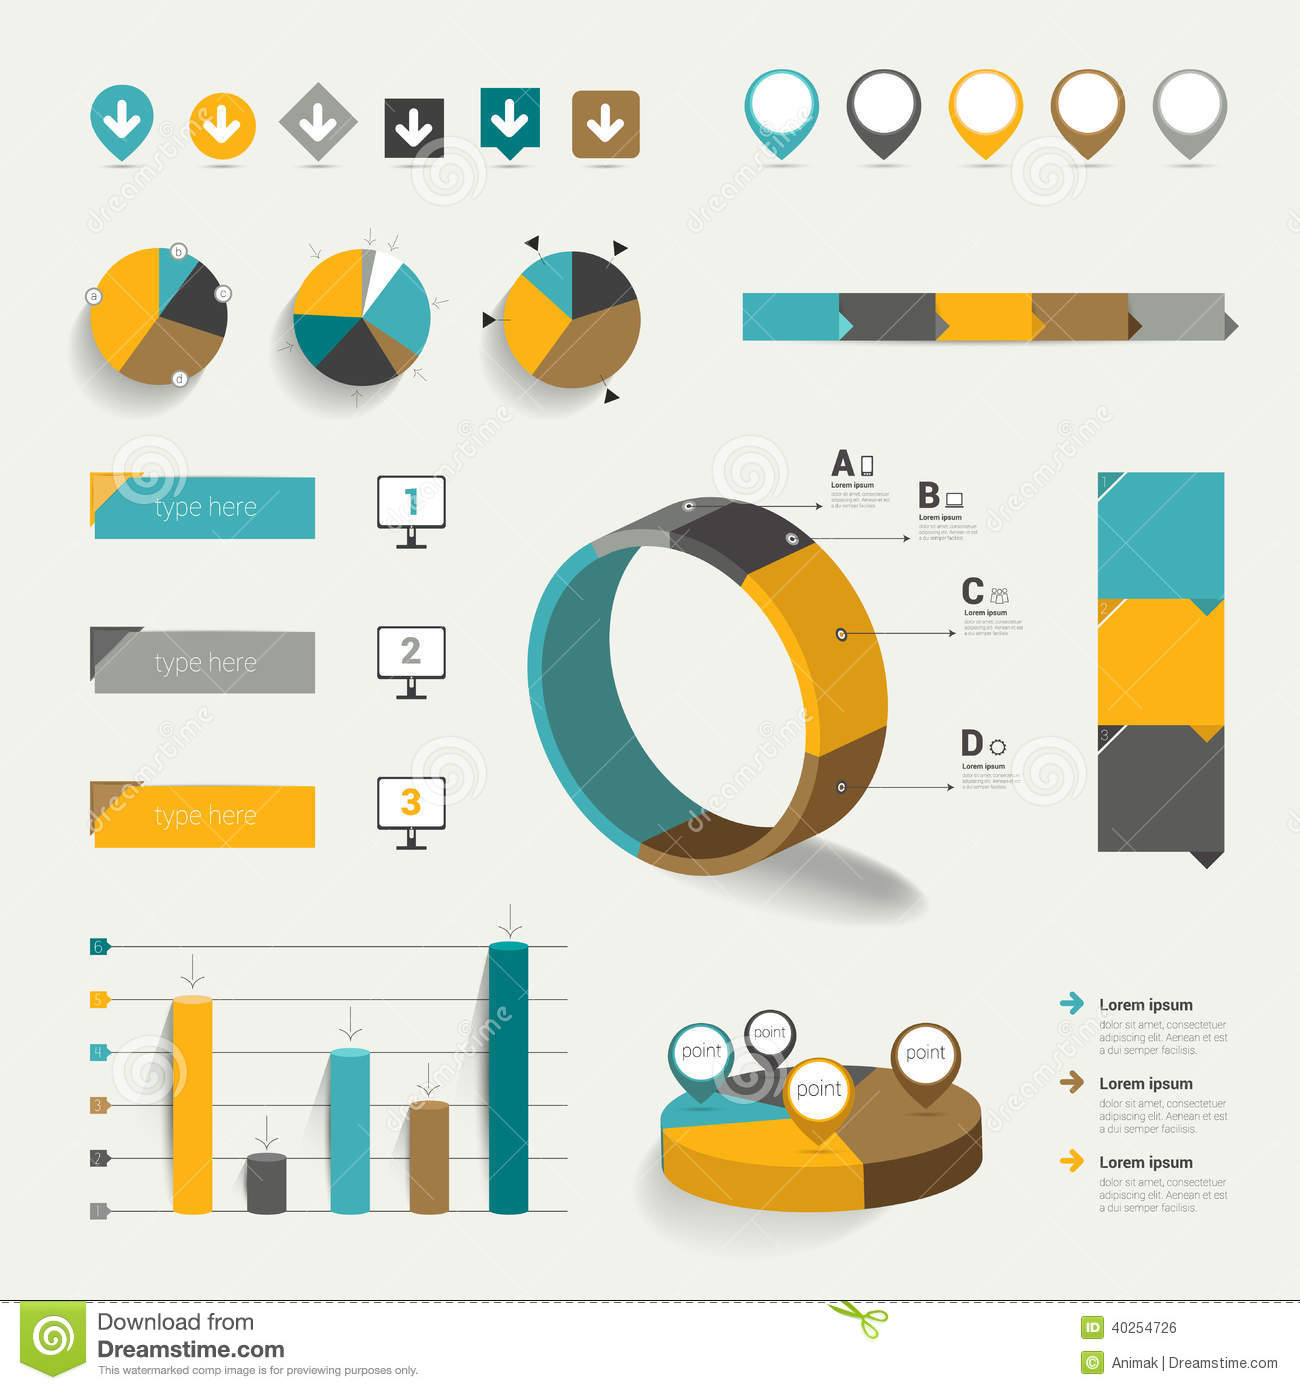 Pie Chart Icon Flat Pie charts and icons.